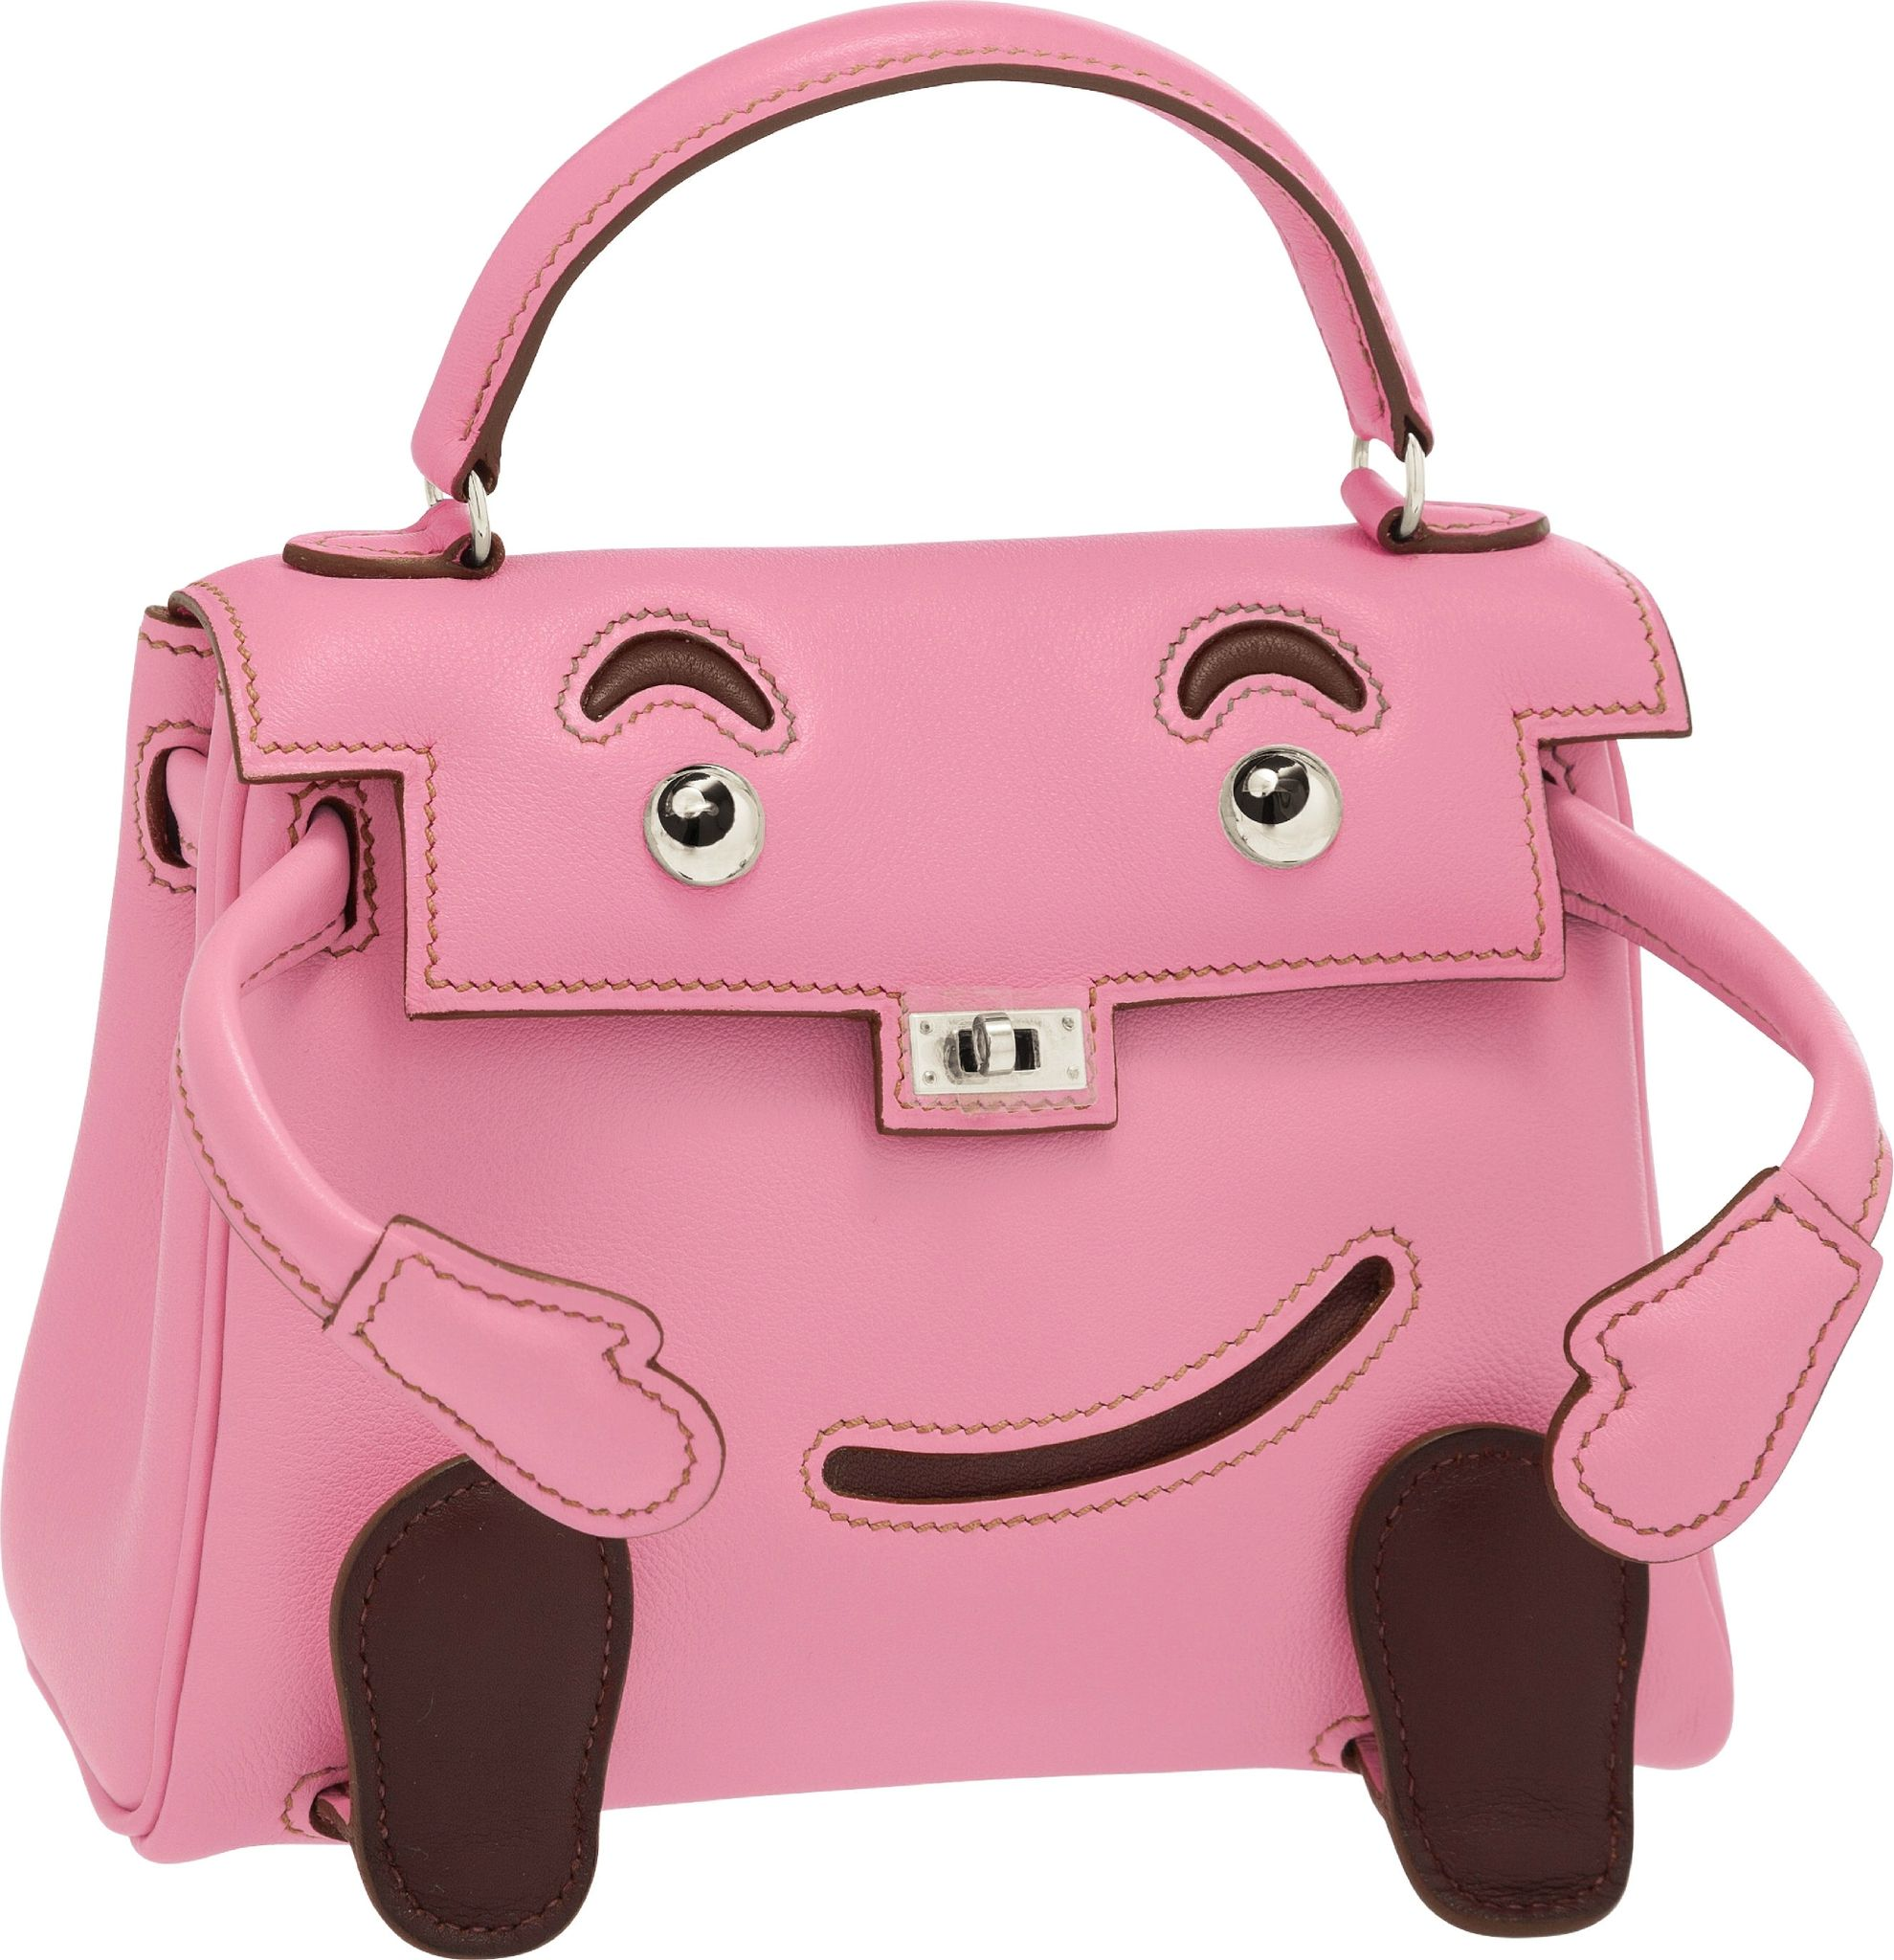 02743fe192ea Hermès Limited Edition 5P Bubblegum Pink Swift Leather Quelle Idole Kelly  Doll Bag with Palladium Hardware.